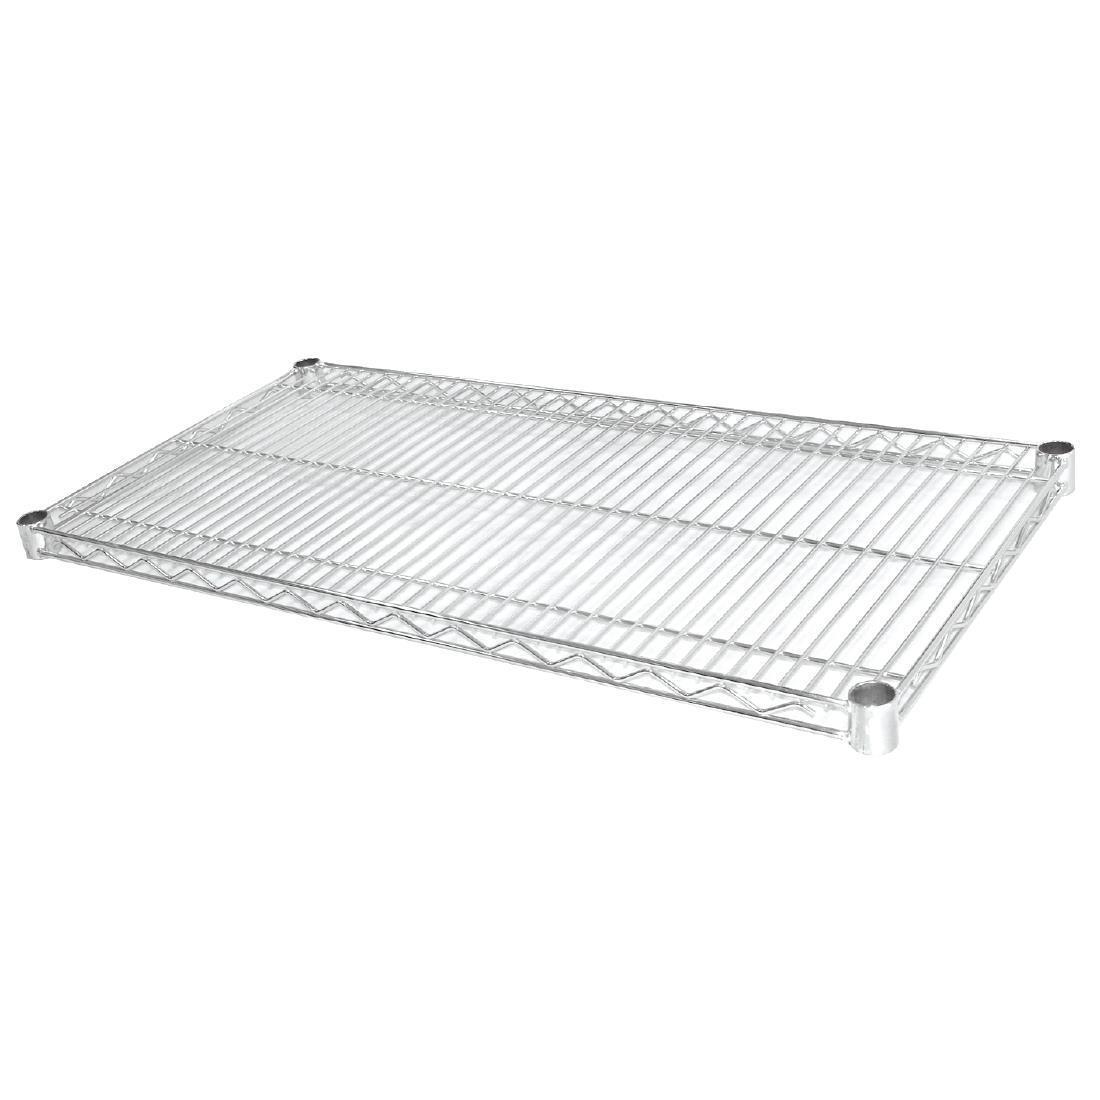 Vogue Chrome Wire Shelves 1525x610mm Pack of 2 - U894